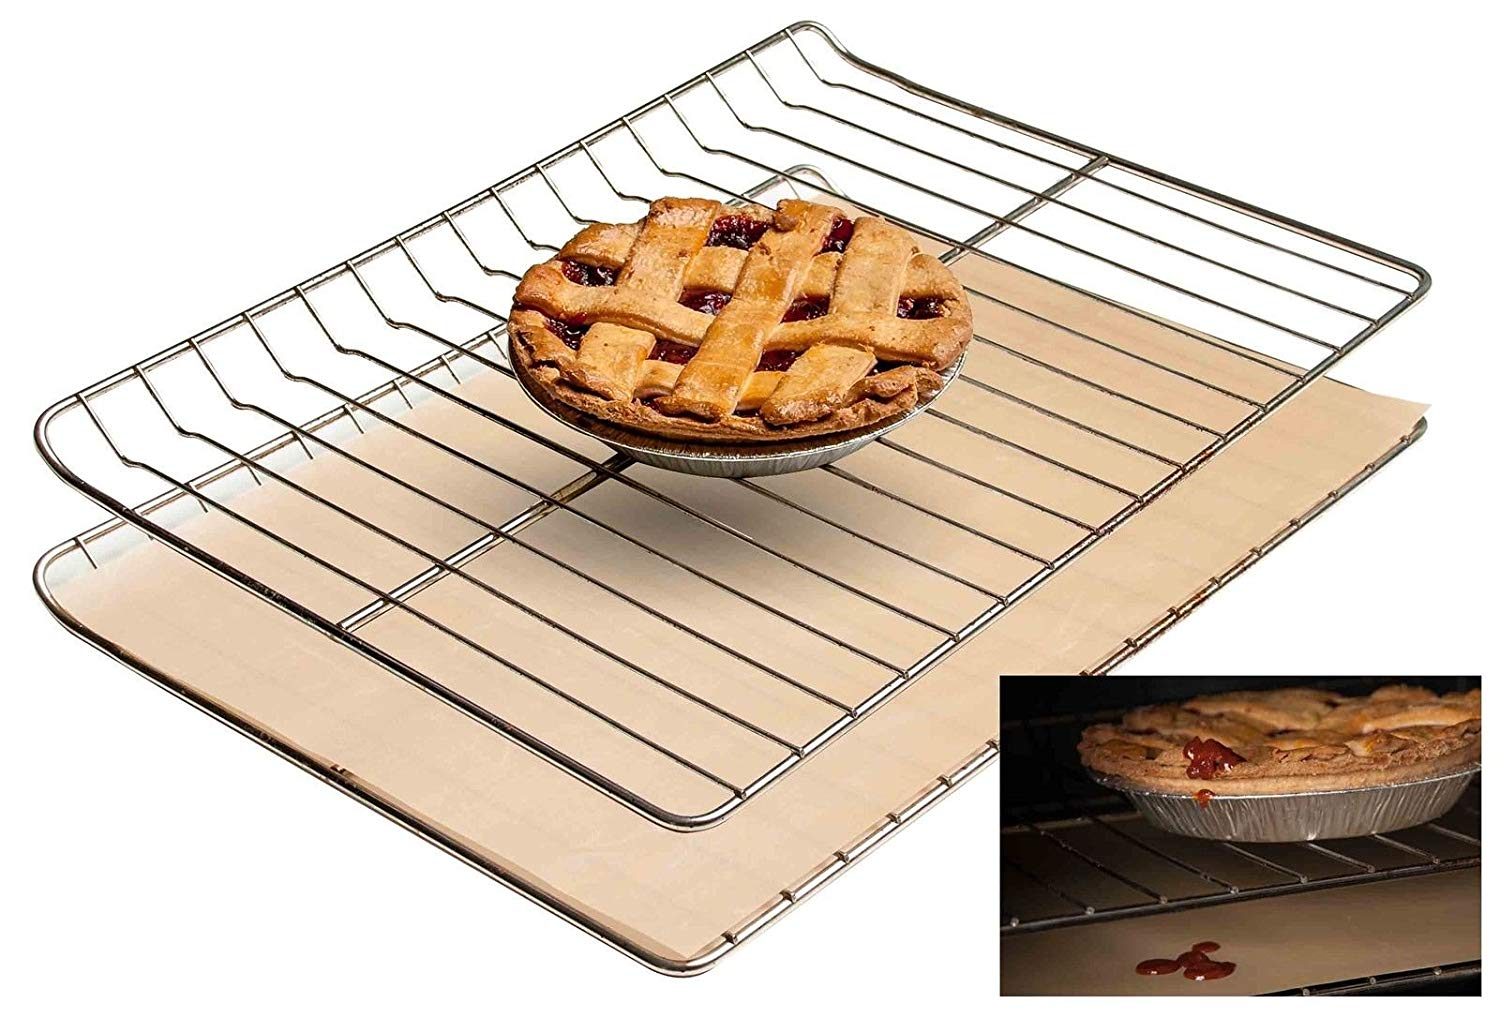 Baking Mats Silicone Non-stick Oven Liner Heavy Duty Reusable Easy to Clean Baking Mat 23 Inches X 16.25 Inches 1 Pcs